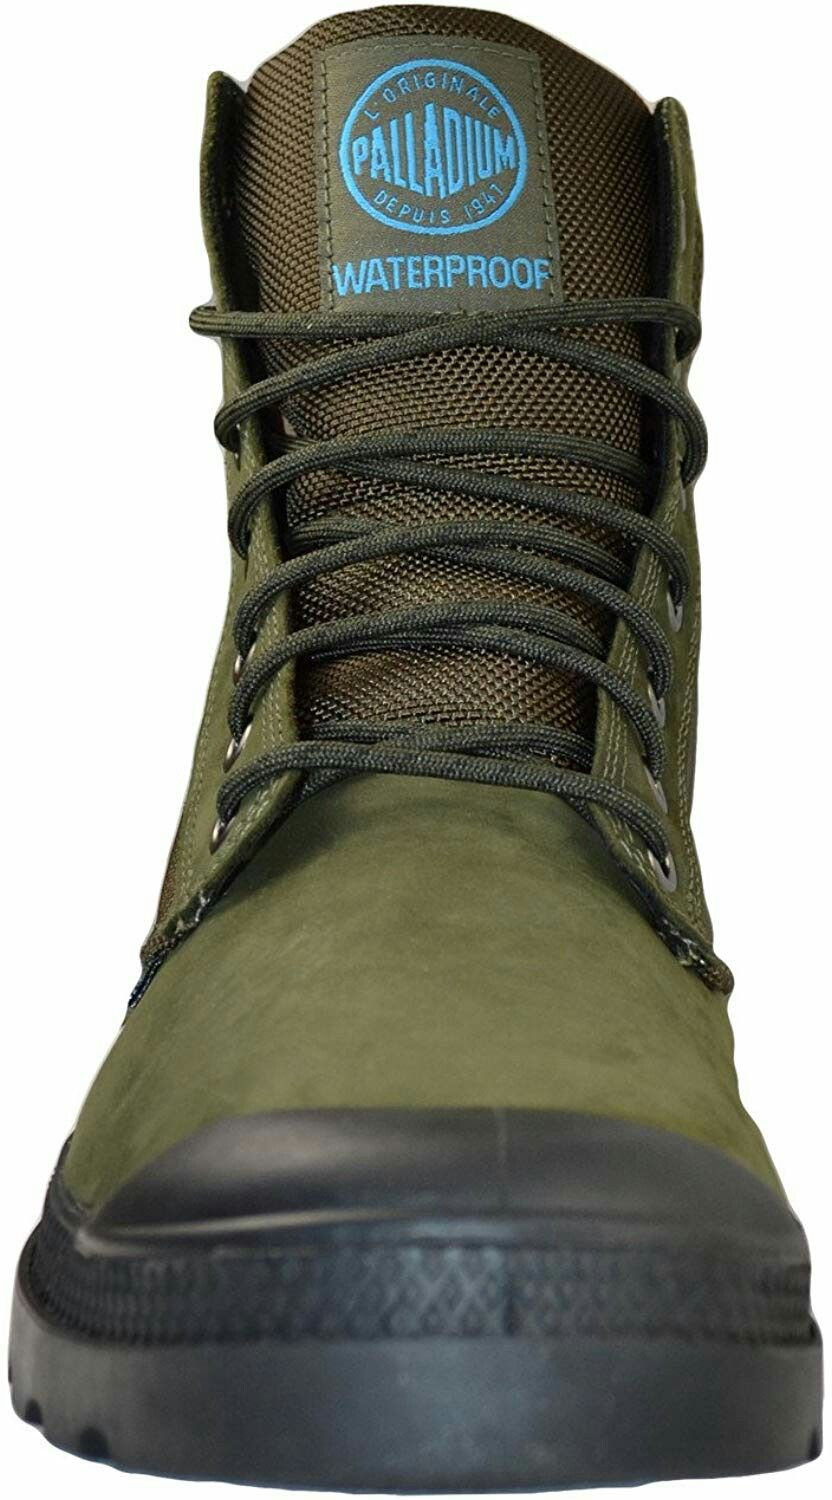 ab78fa722cf Palladium Men's Pampa Sport Cuff Wpn Rain Boot Army Green/Black ...